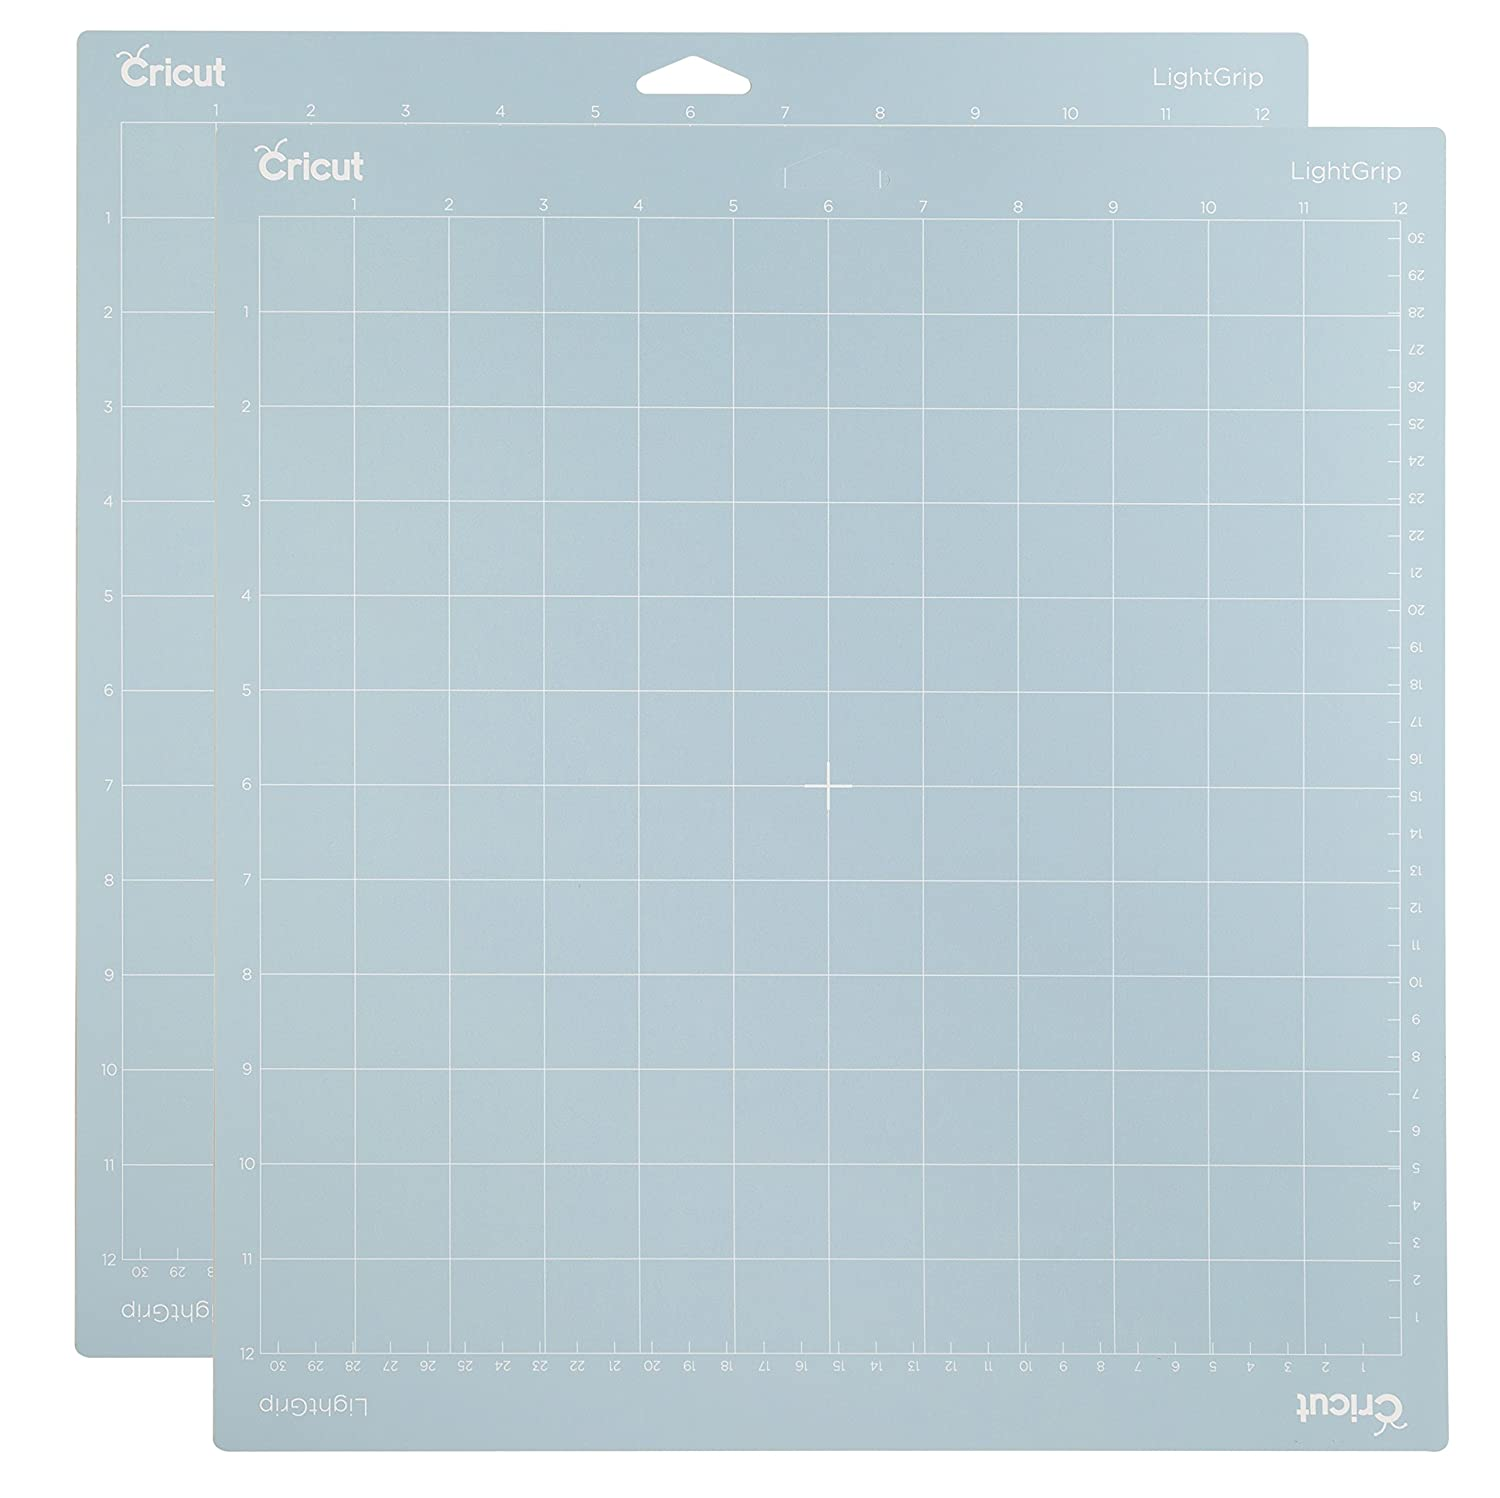 Cricut 2001976 LightGrip Adhesive Cutting Mat, 12-Inch by 12-Inch Provo Craft